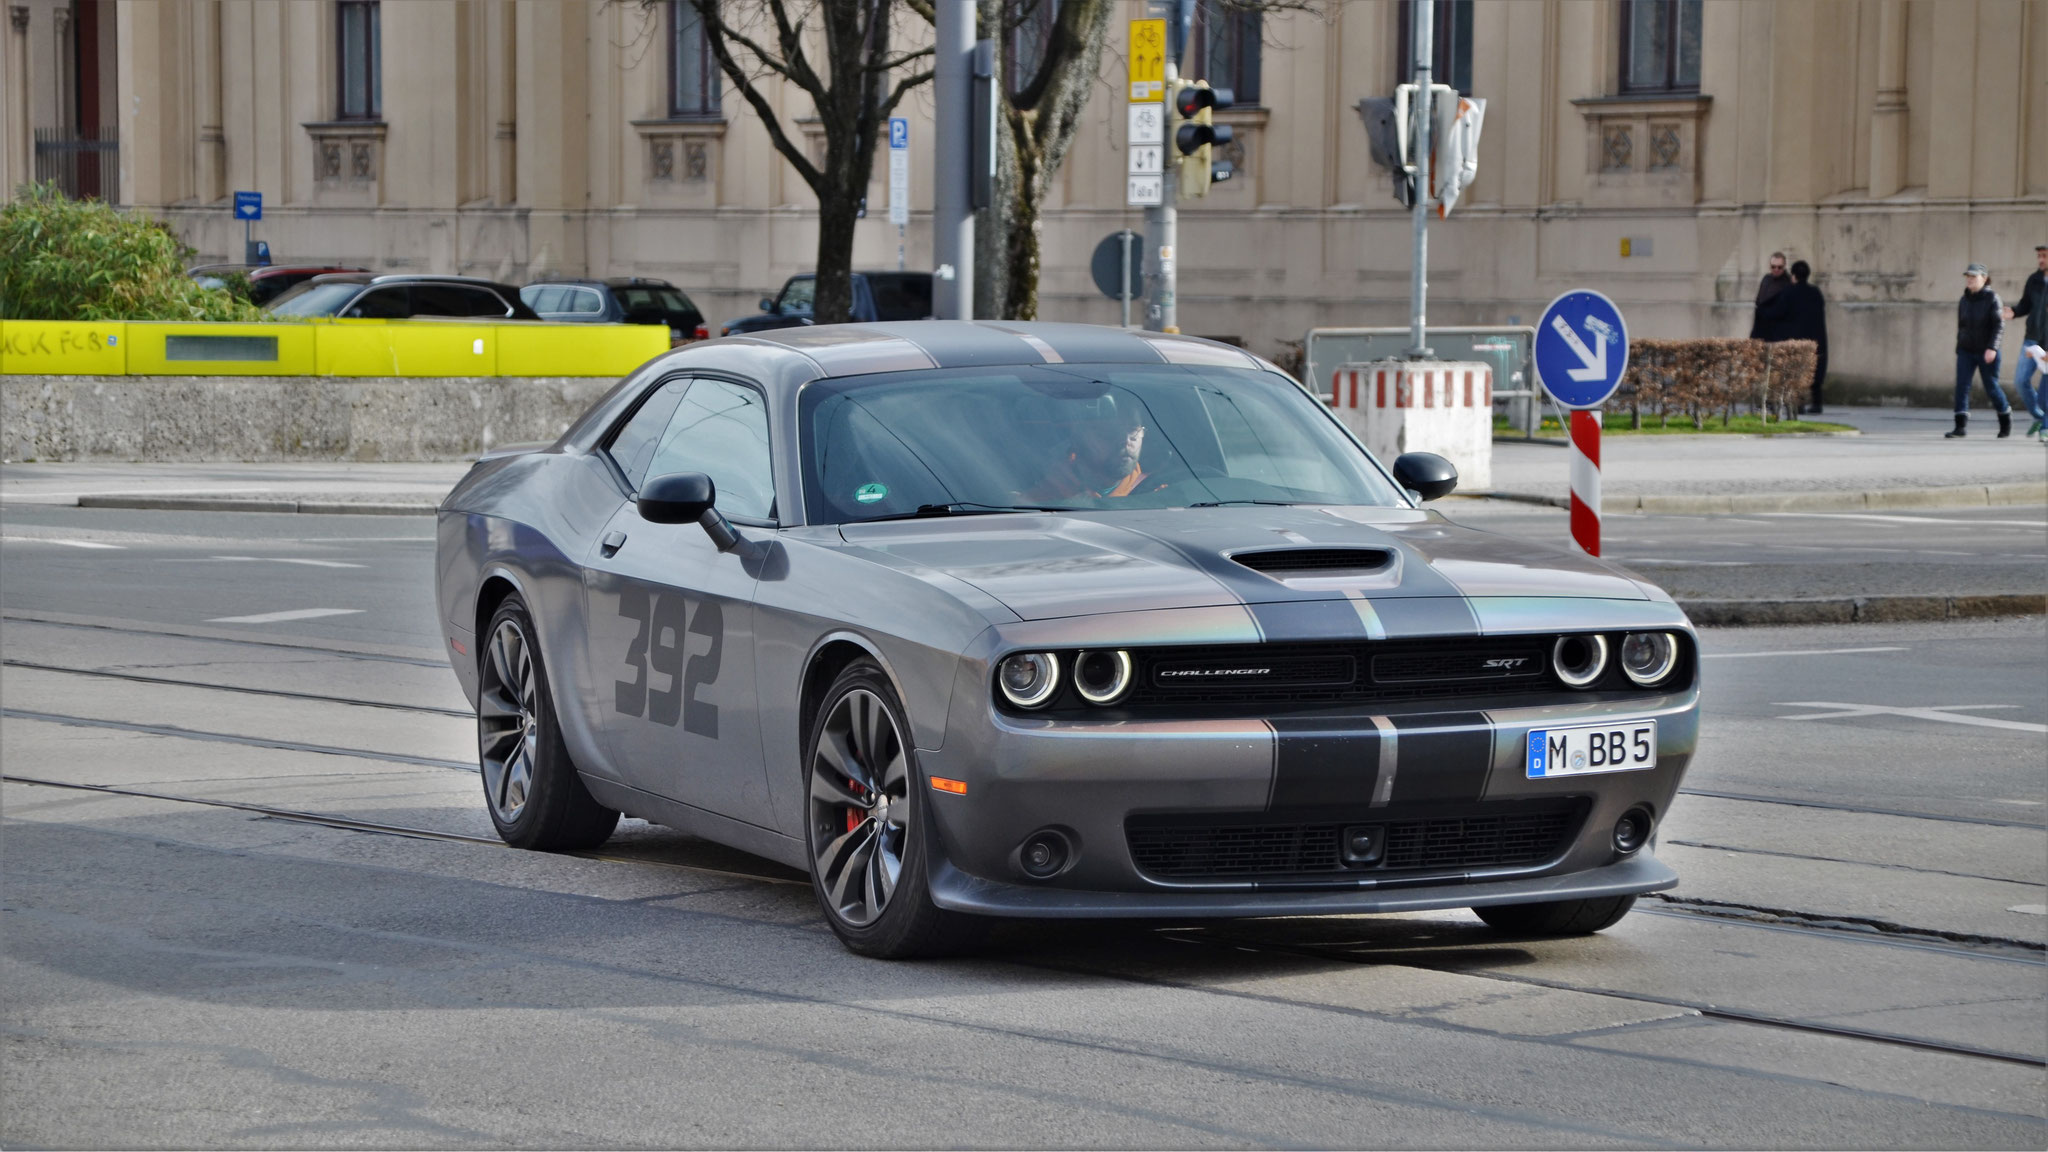 Dodge Challenger SRT 8 - M-BB-5